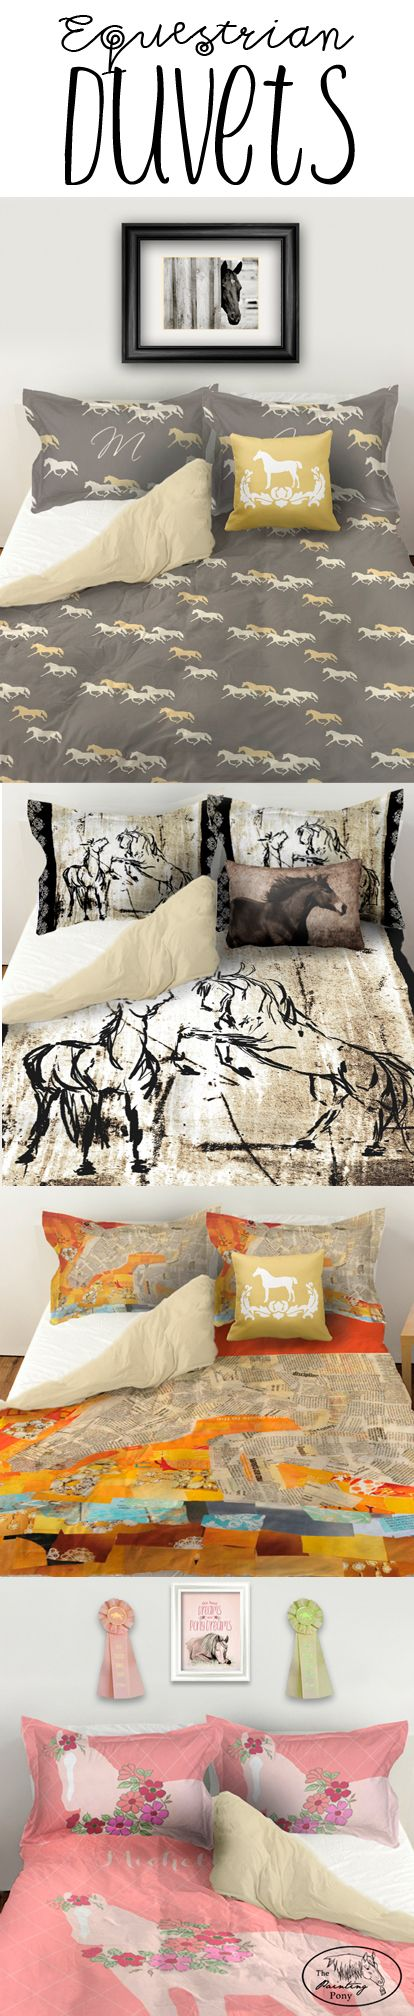 Duvet Bedding sets for the equestrian horse lover's bedroom decor. Available in twin, queen, or kind size bed covers with matching horse pillow shams. Cute and whimsical to stylish, classy and chic equestrian home decor. Great for anyone who loves horses and ponies from little girls to the more mature.